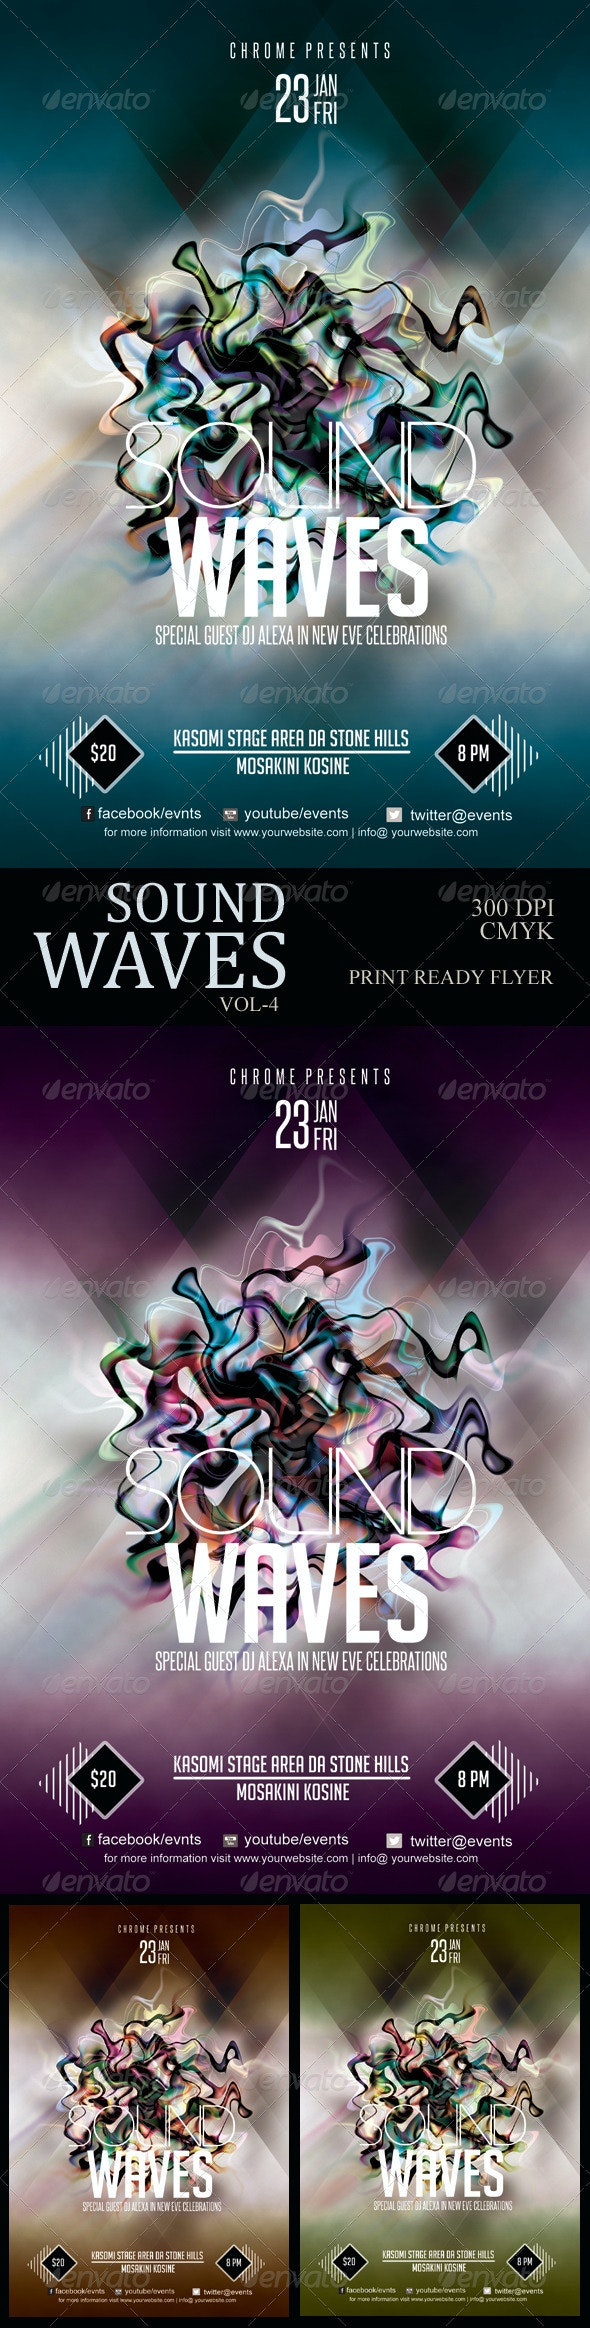 Sound Waves Flyer 5 - Clubs & Parties Events